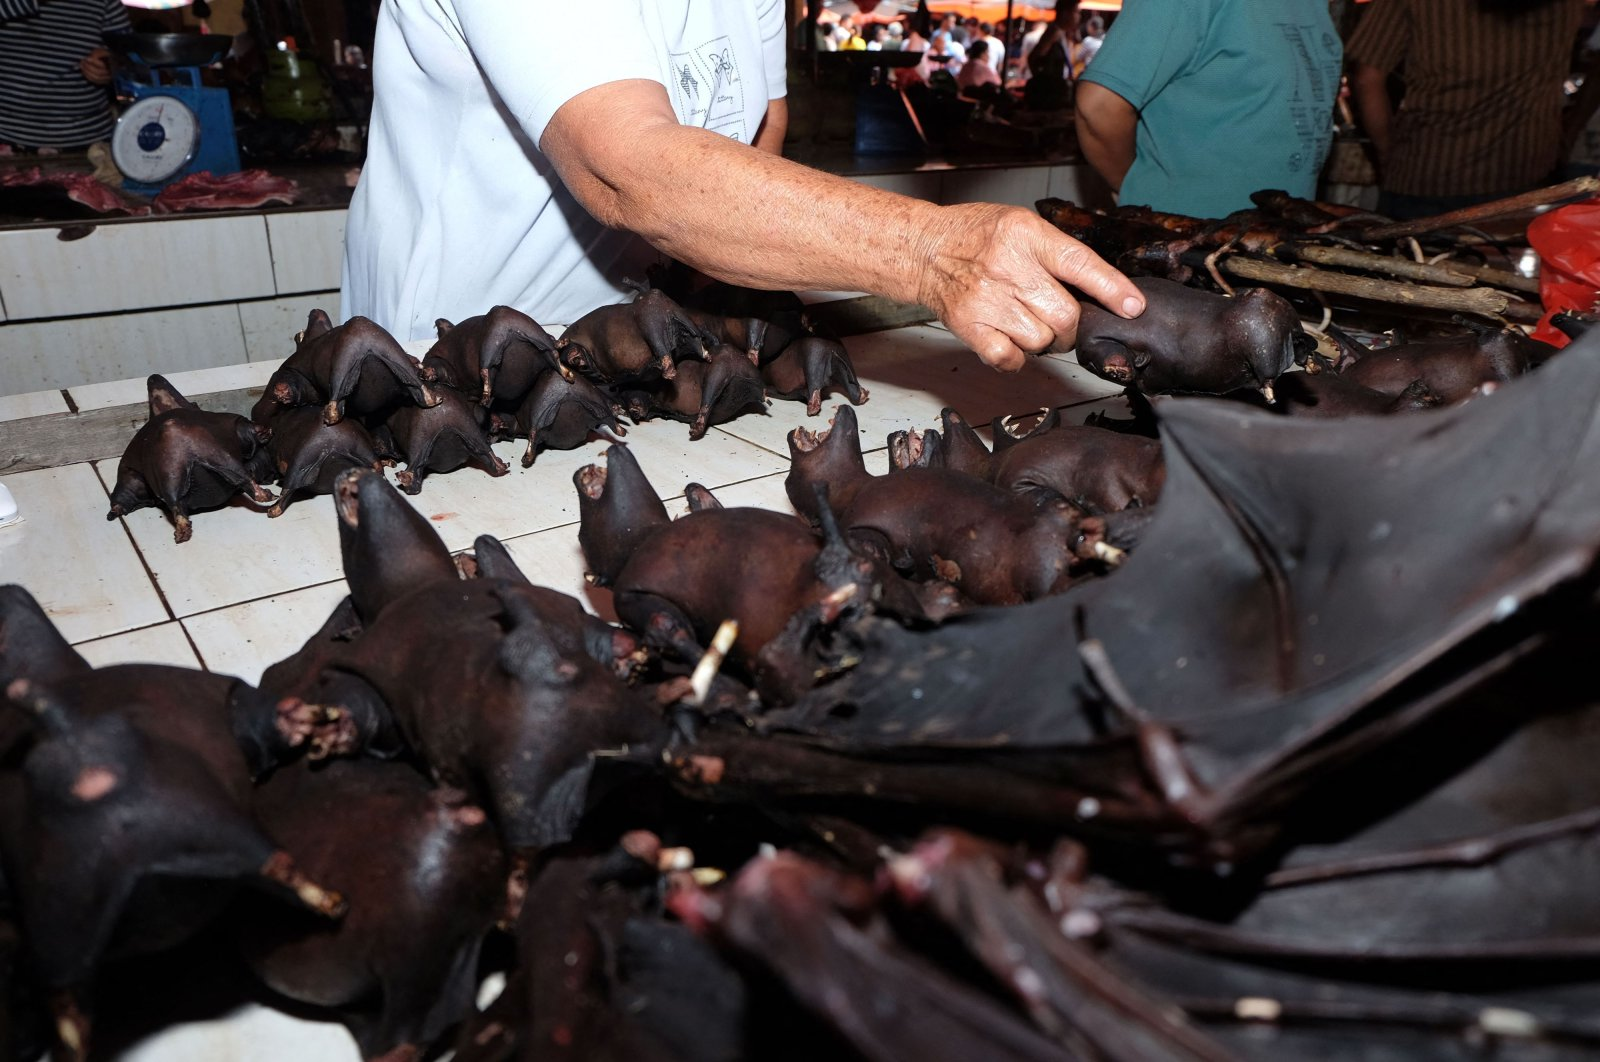 A vendor sells bats at the Tomohon Extreme Meat market on Sulawesi Island, Indonesia, Feb. 8, 2020.  (AFP Photo)